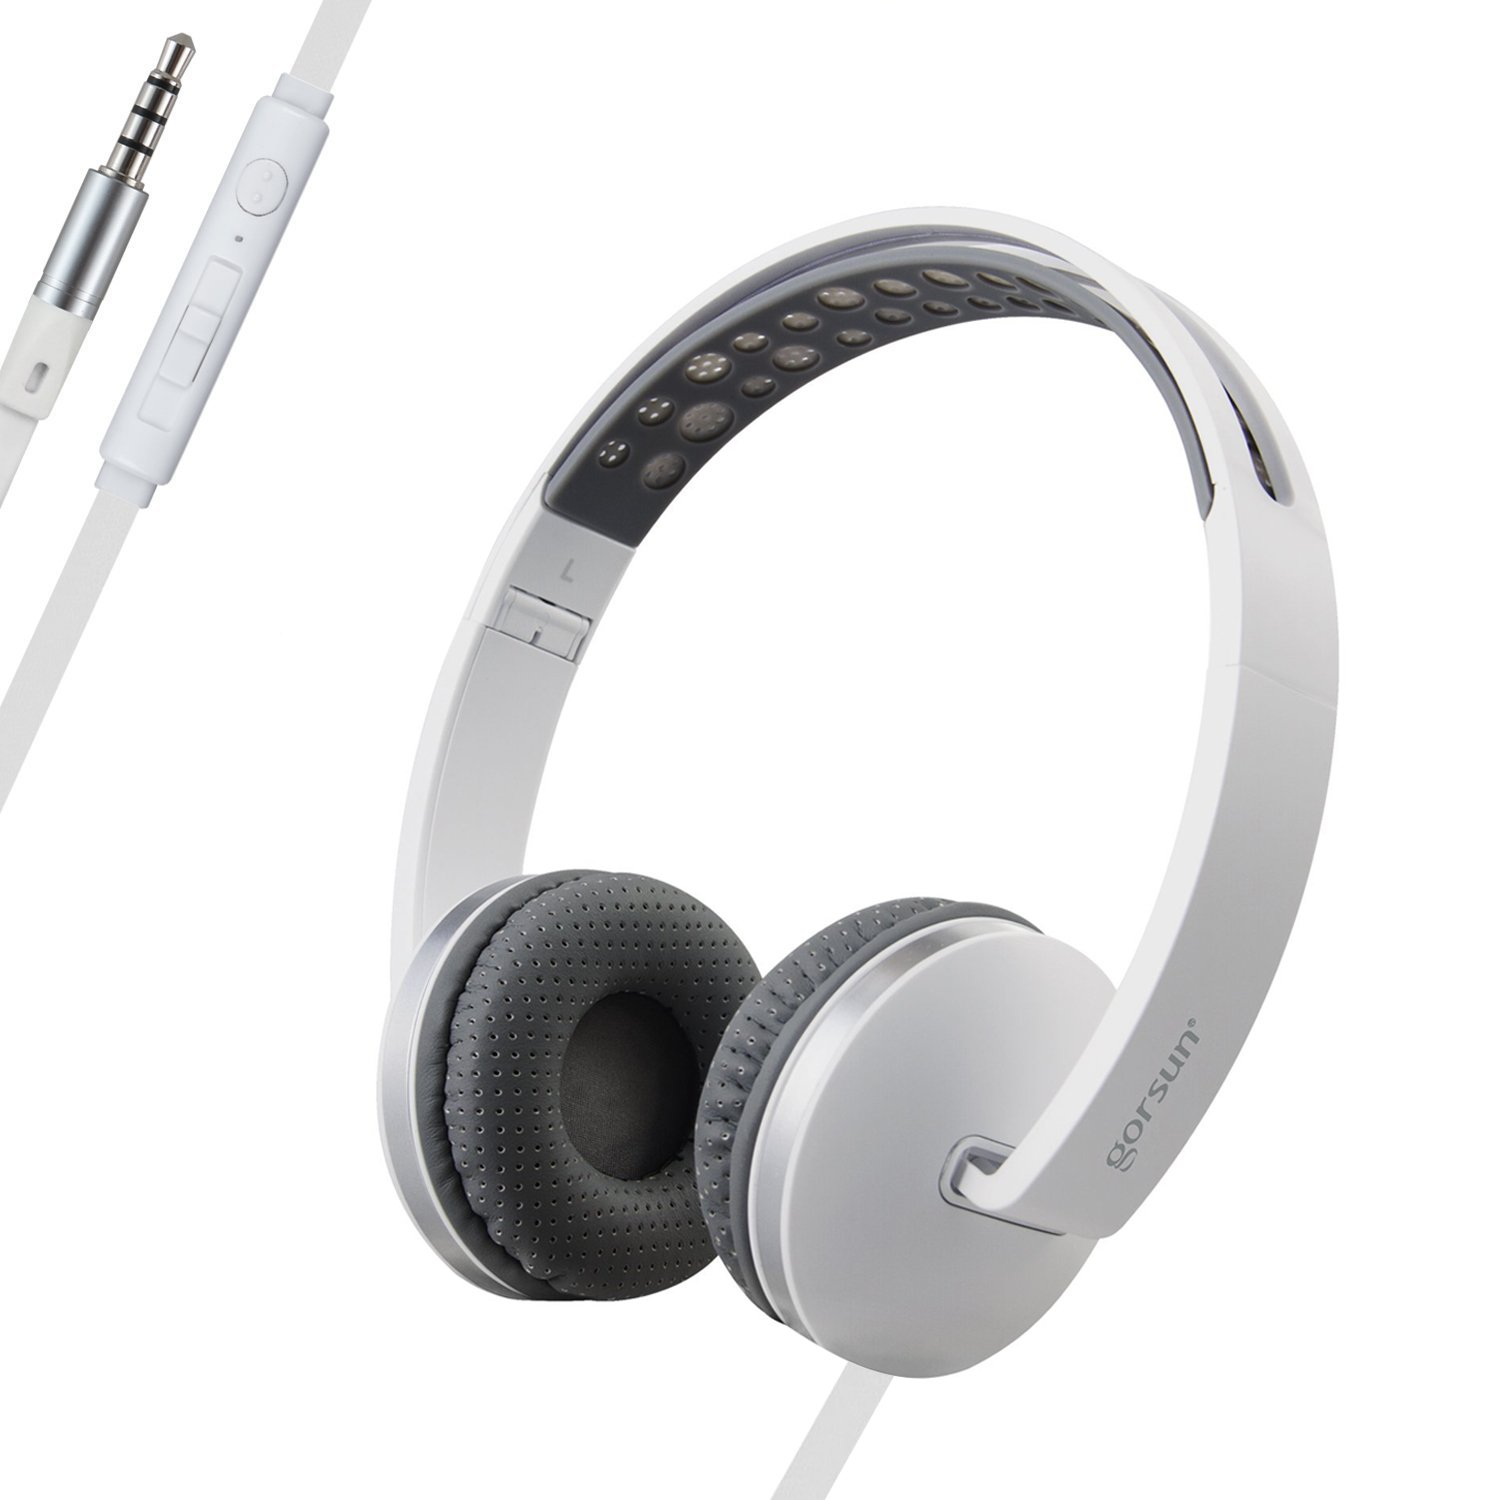 ONTA gorsun Sport Lightweight Foldable On-Ear Headphones Adjustable Headsets with Mic and volume control 3.5mm for kids Iphone Laptop Computer Mp3/4 Earphones (white)